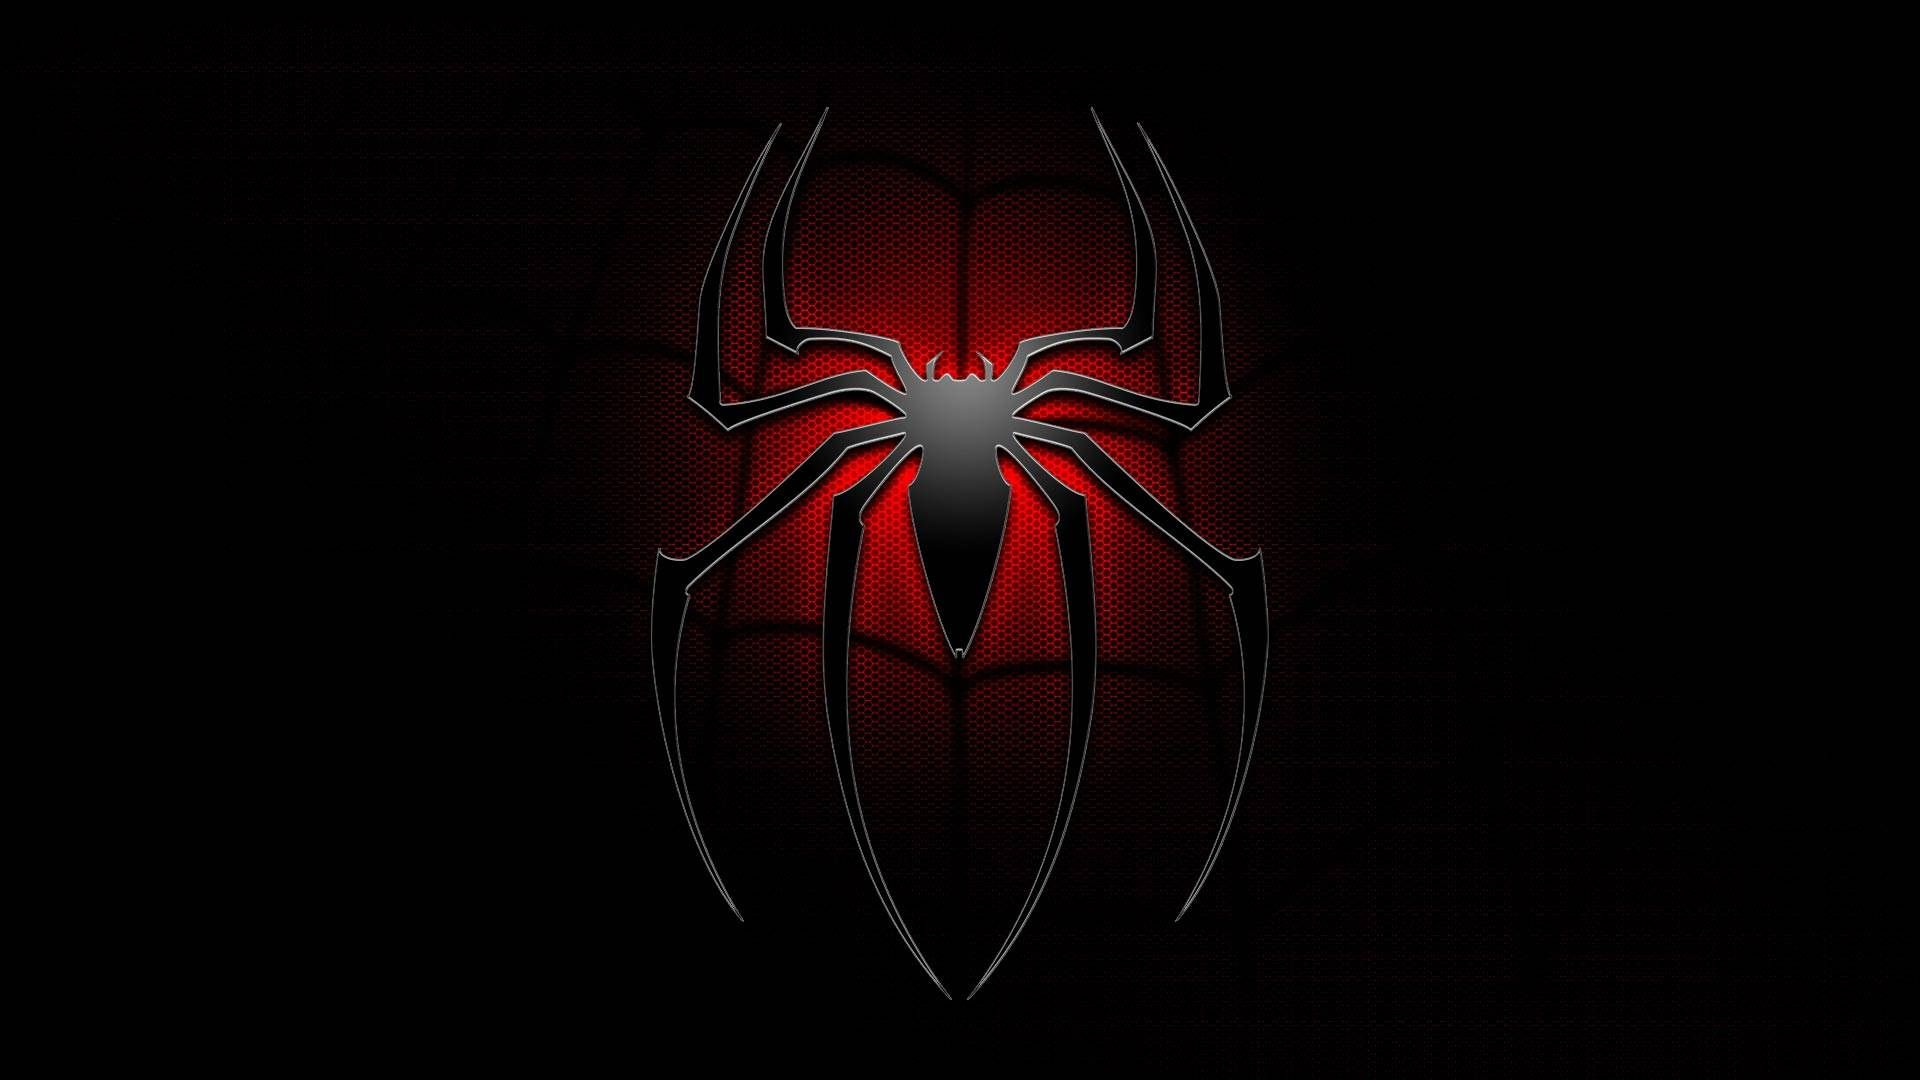 Download Wallpaper Home Screen Spiderman - acdc185840ff0759e670392dcceed822  Photograph_44922.jpg